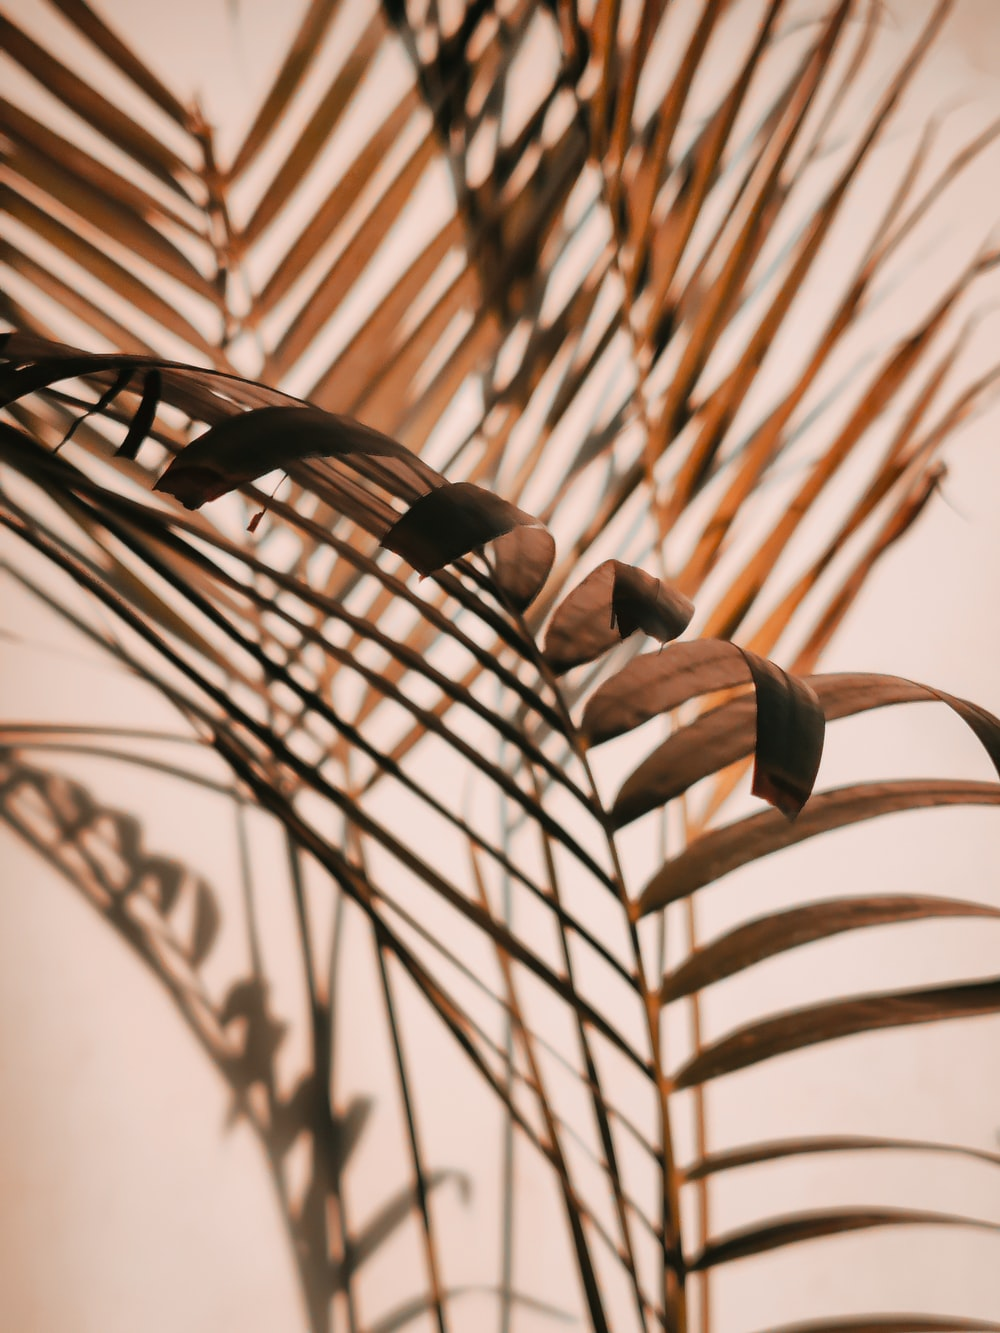 brown leaves in close up photography